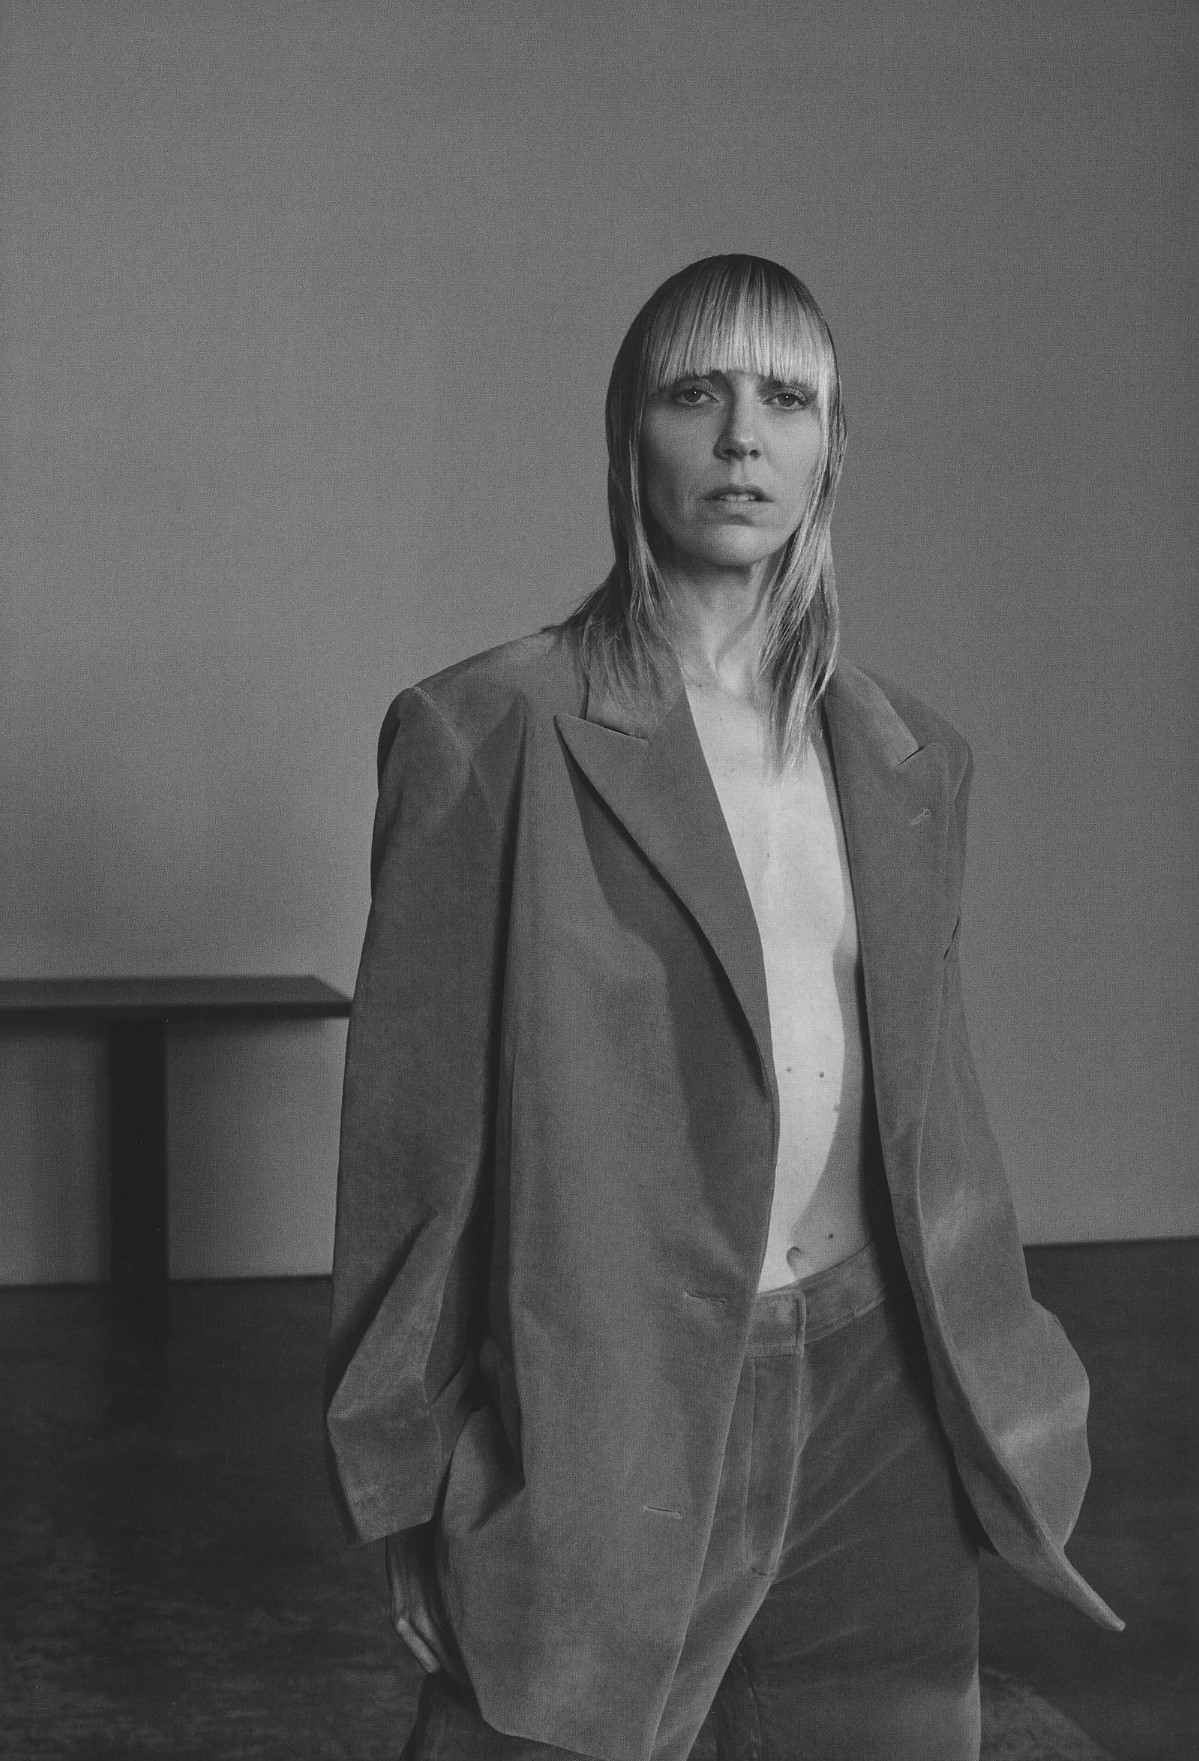 dries van noten photography collier schorr styling katie shillingford another magazine vol 2 issue 6 aw 2017 7